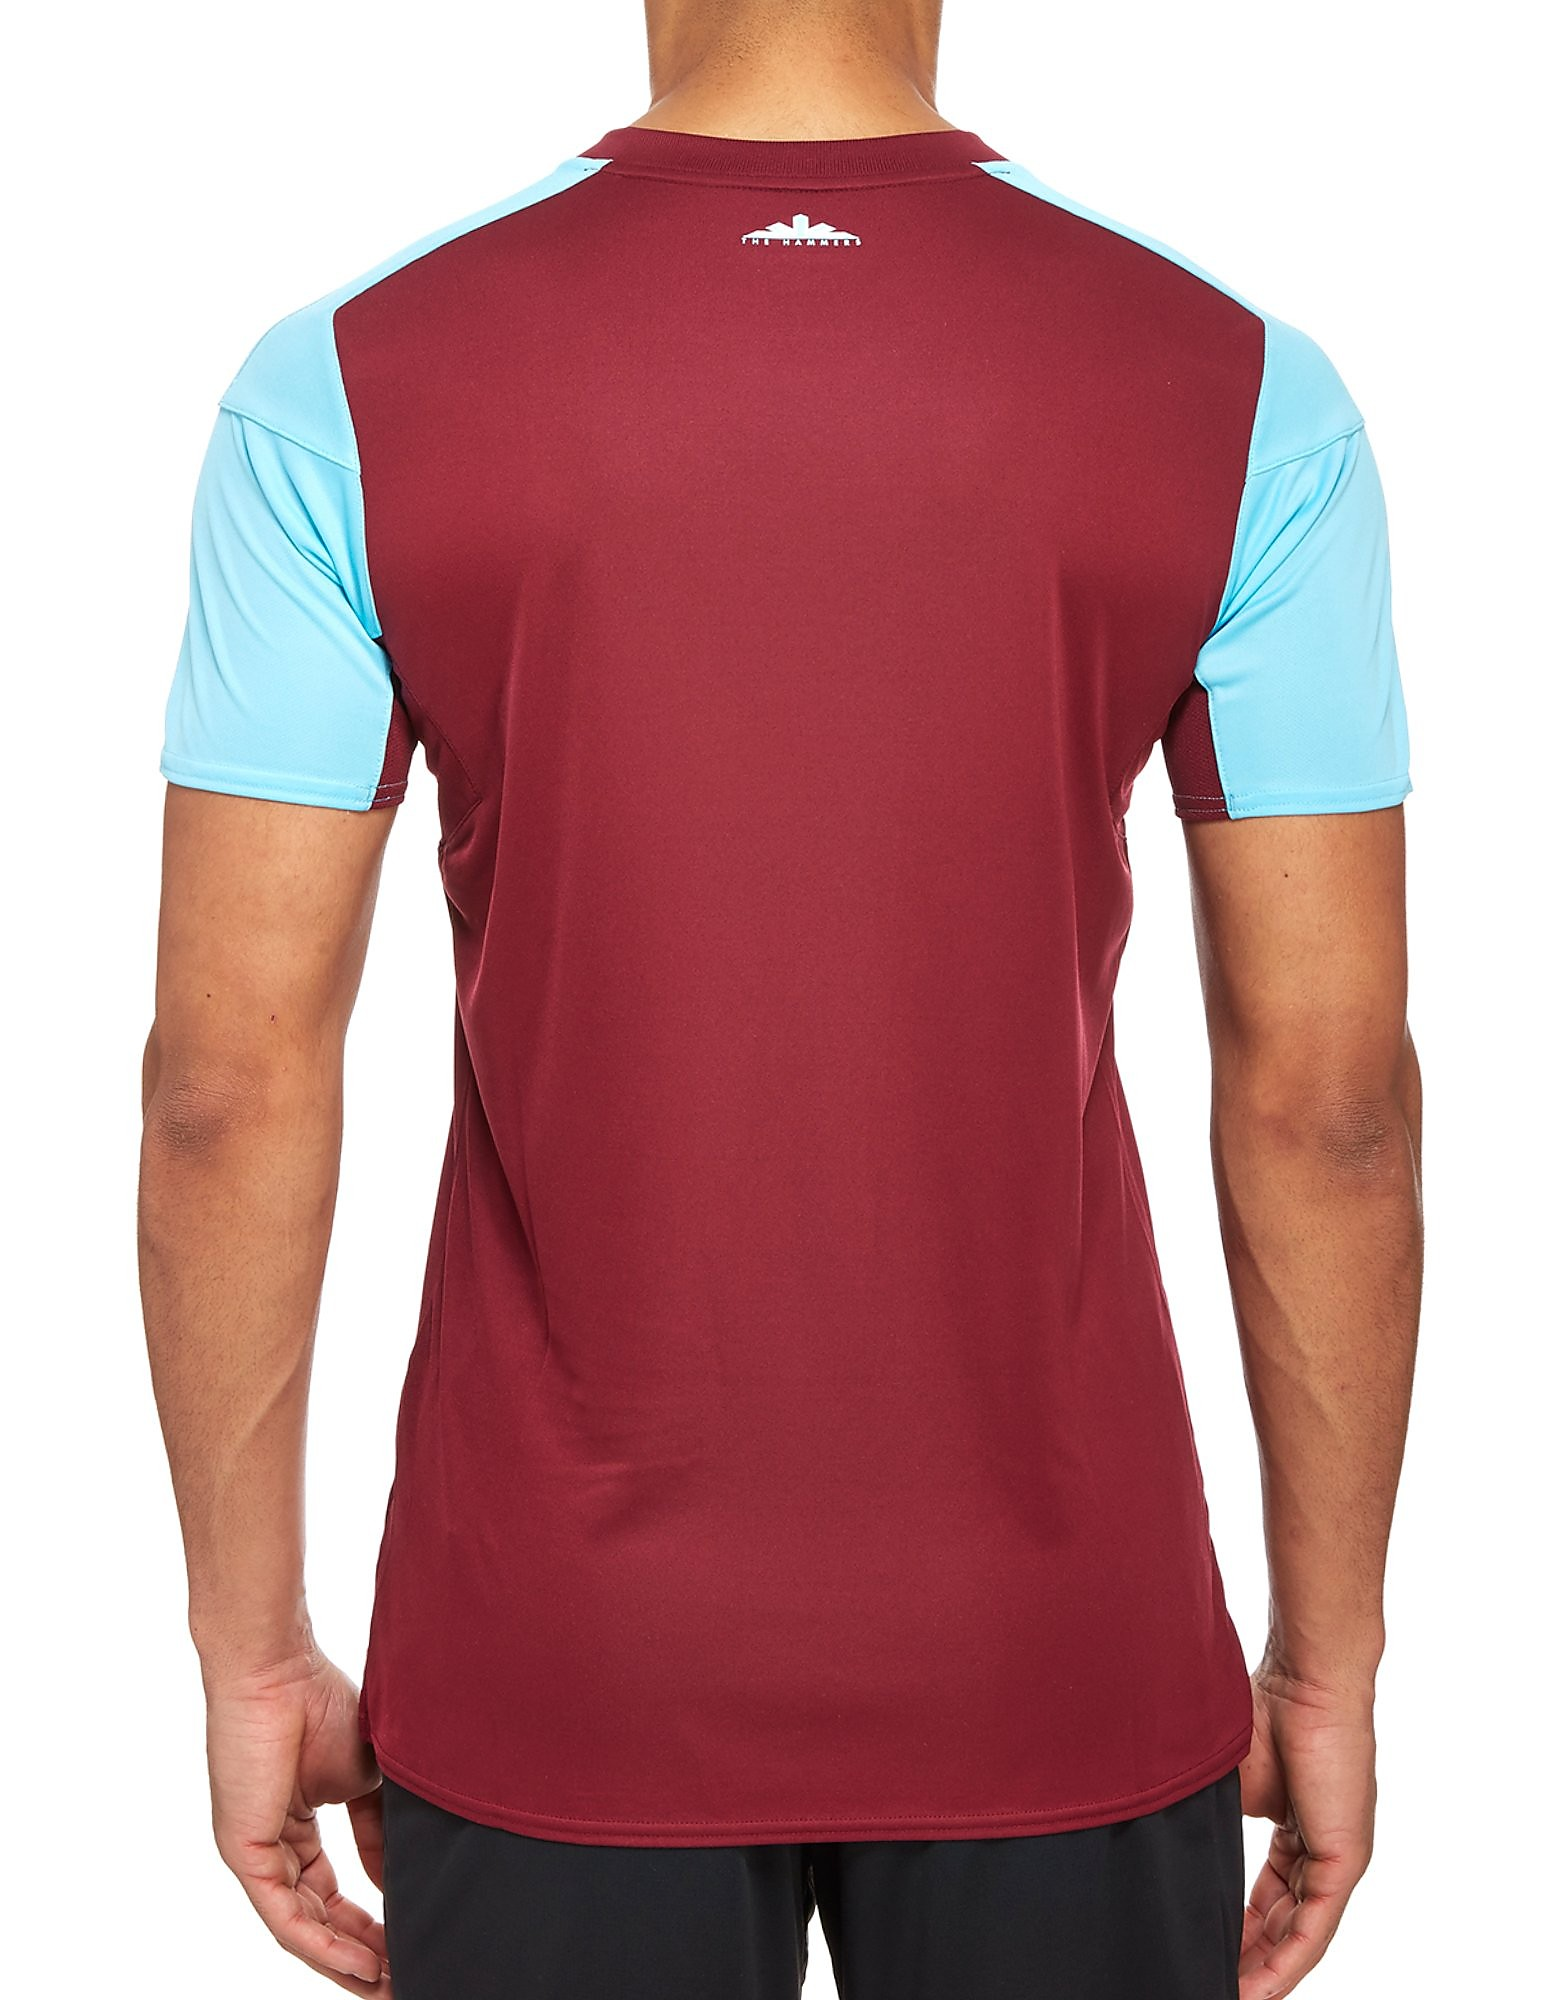 Umbro West Ham United 2017/18 Home Shirt